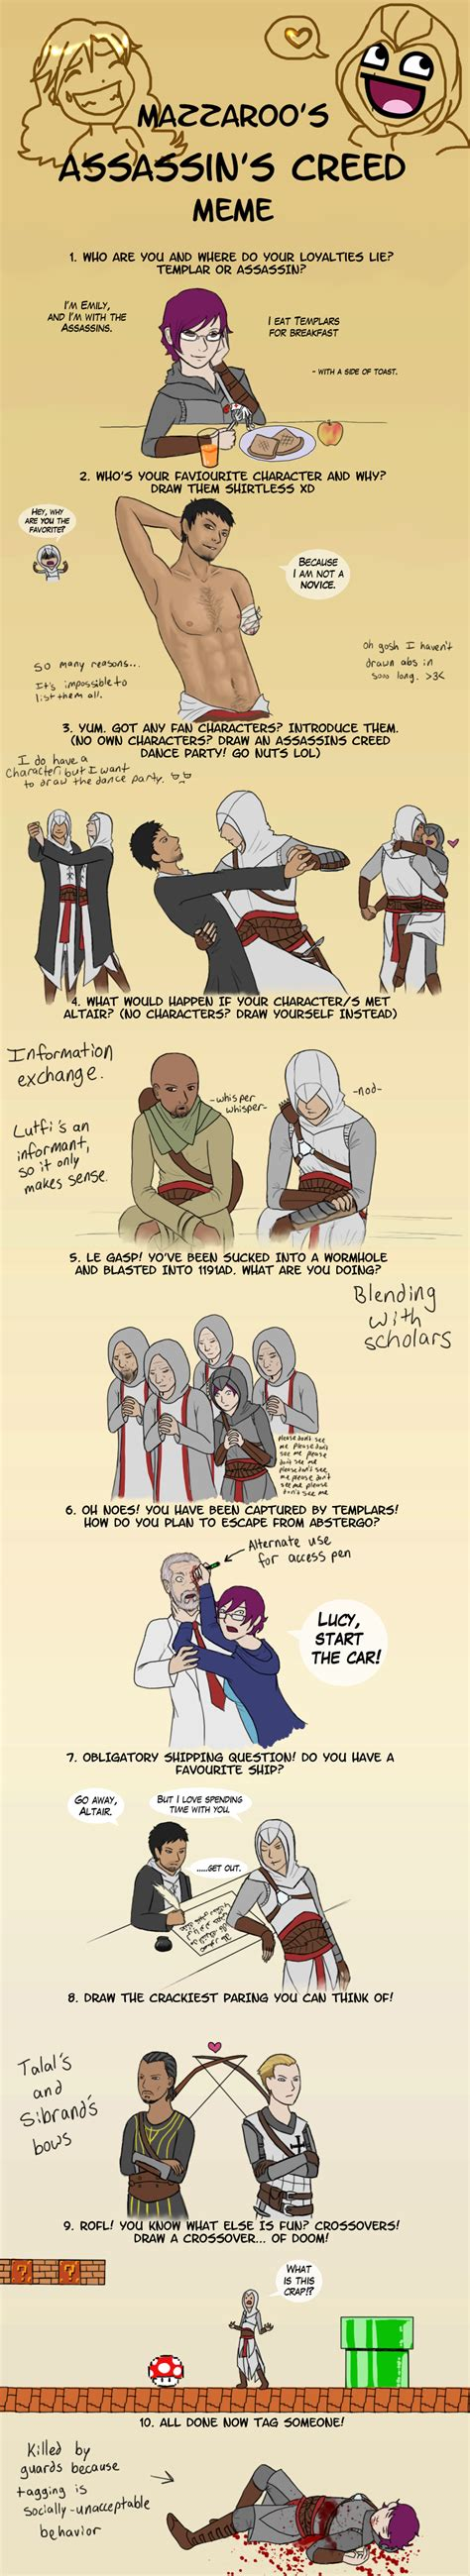 Assassins Creed Memes - assassin s creed meme by arithusa on deviantart